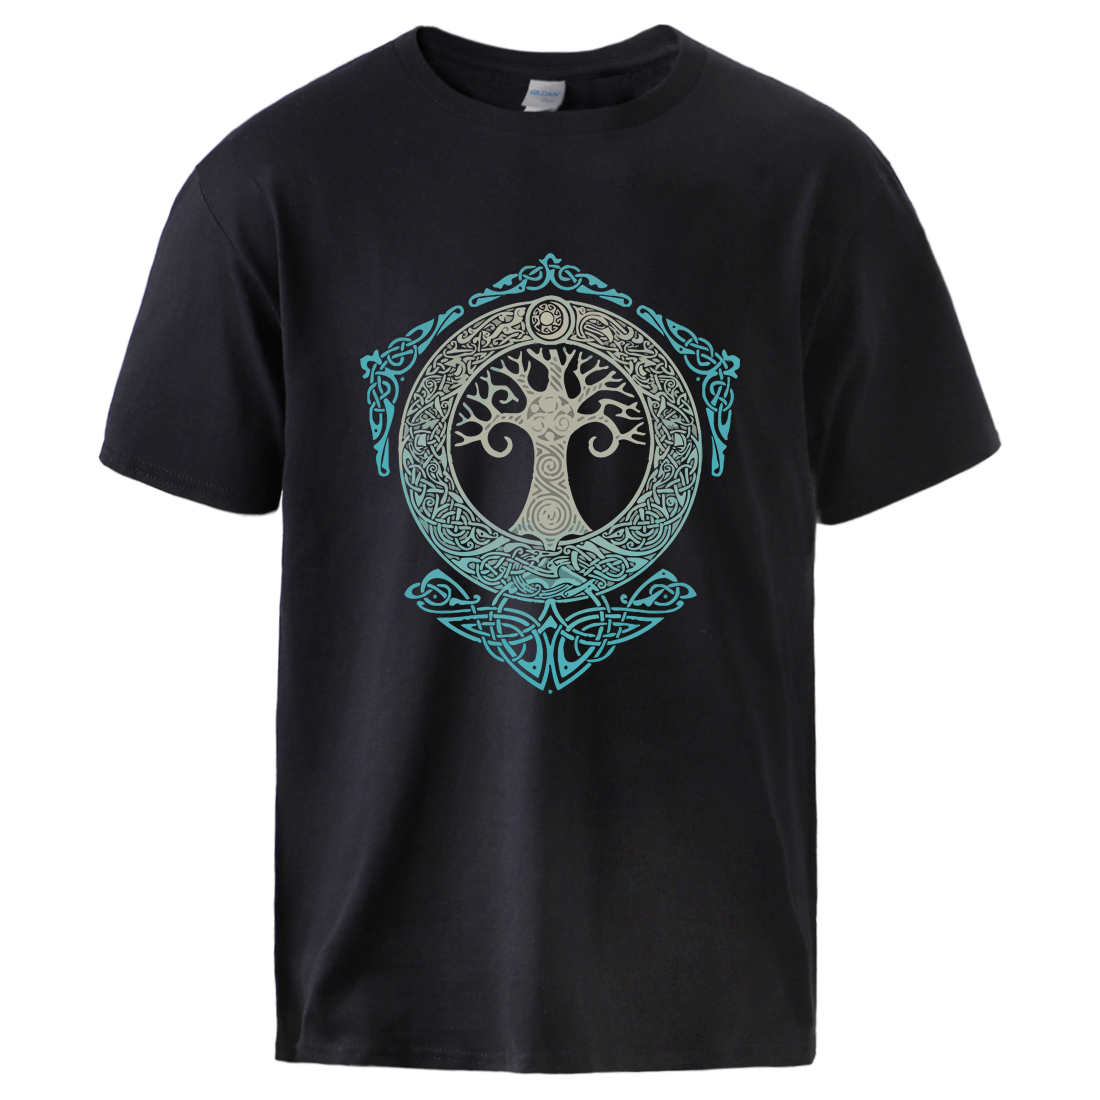 Vikings Tshirts For Man Yggdrasil Norse Mythology Summer Cotton T Shirts Tee Male Casual Short Sleeve Crewneck Sportswear Tee